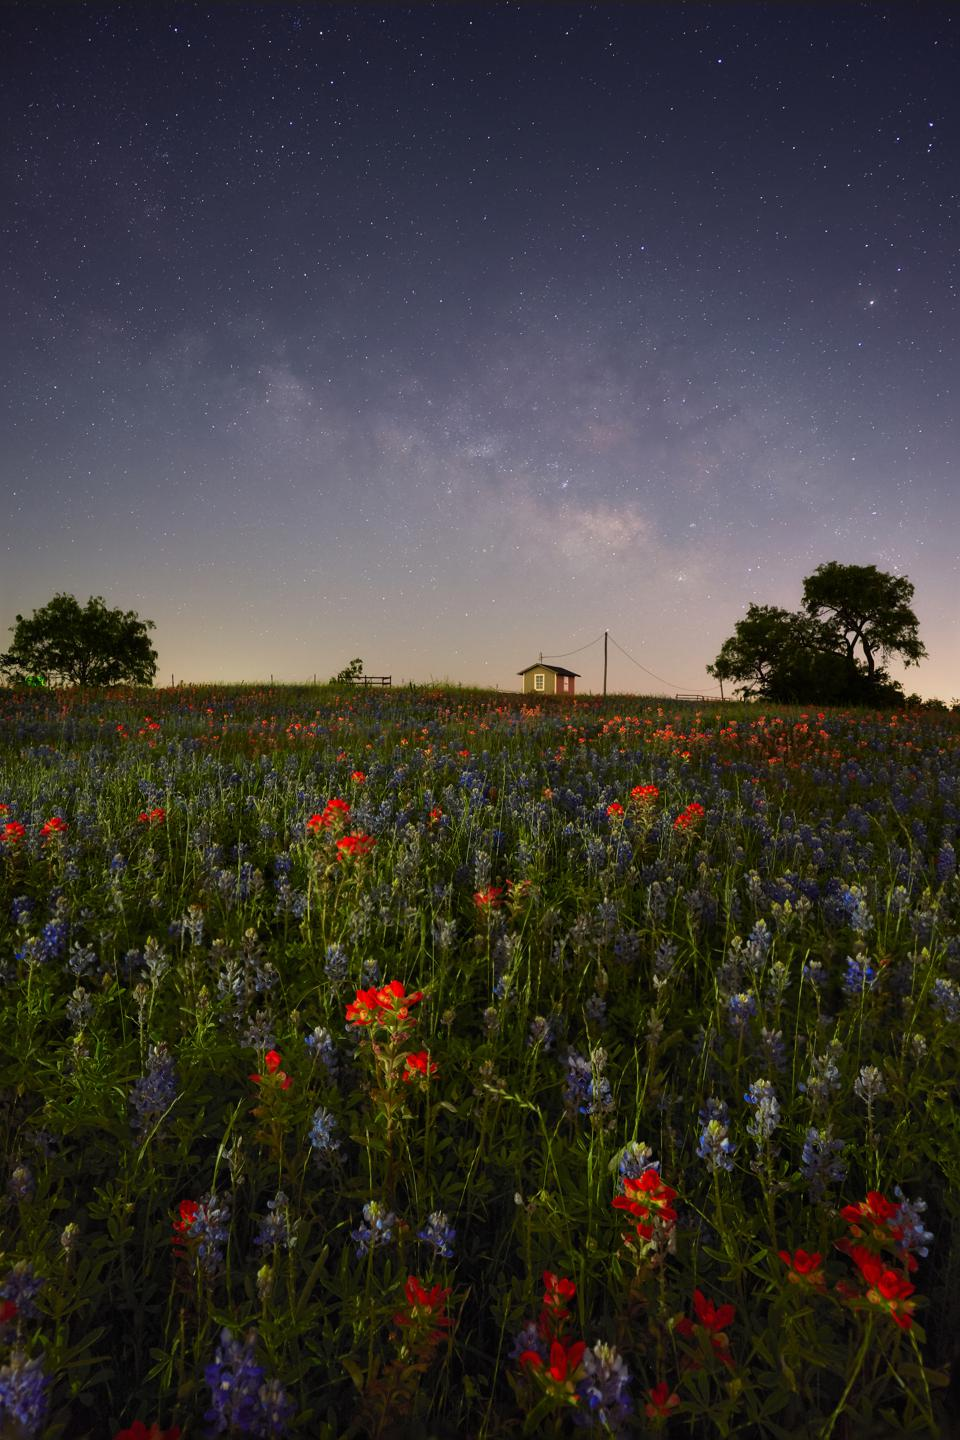 ″The Barn″ between the Milky Way and Texas lupines.